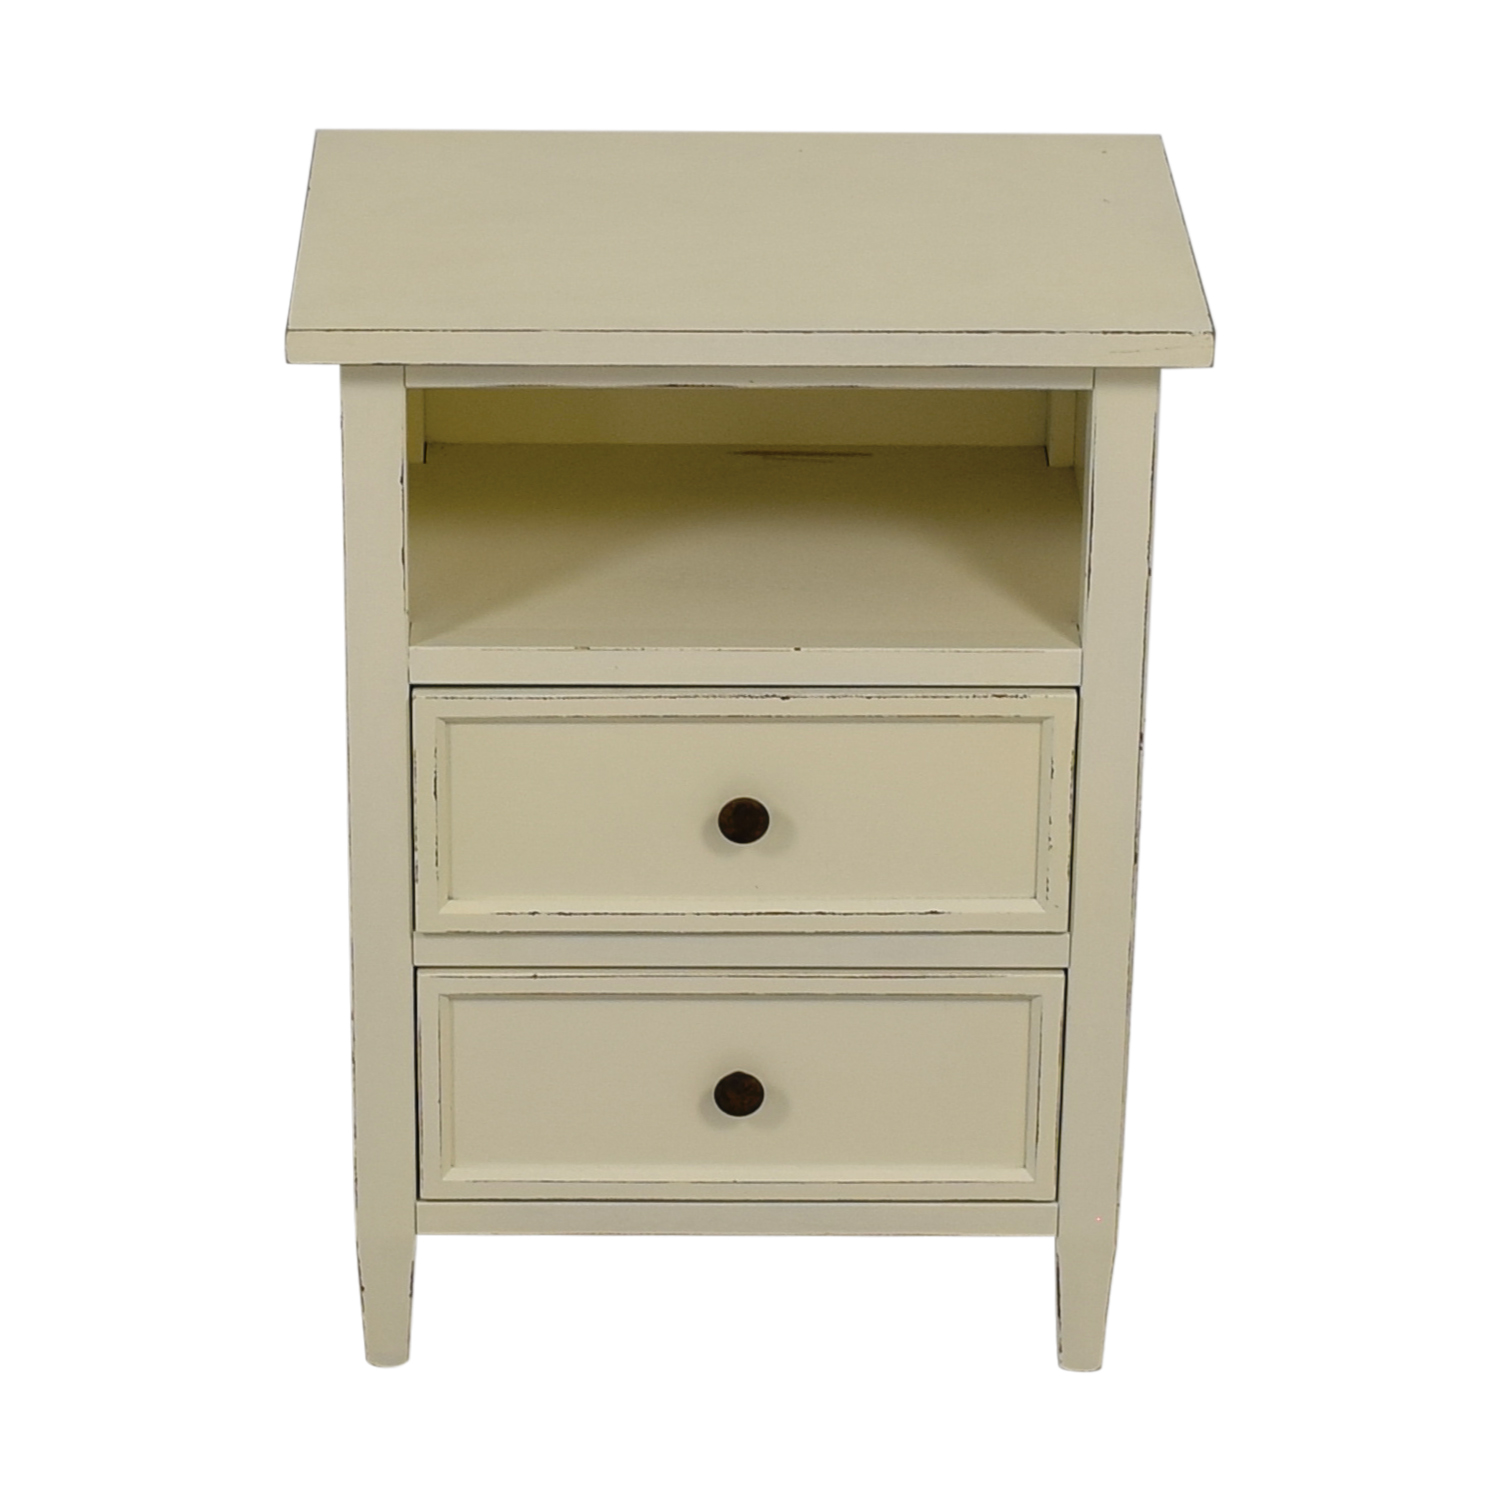 Crate & Barrel Crate & Barrel Harbor Dama White Two-Drawer Nightstand